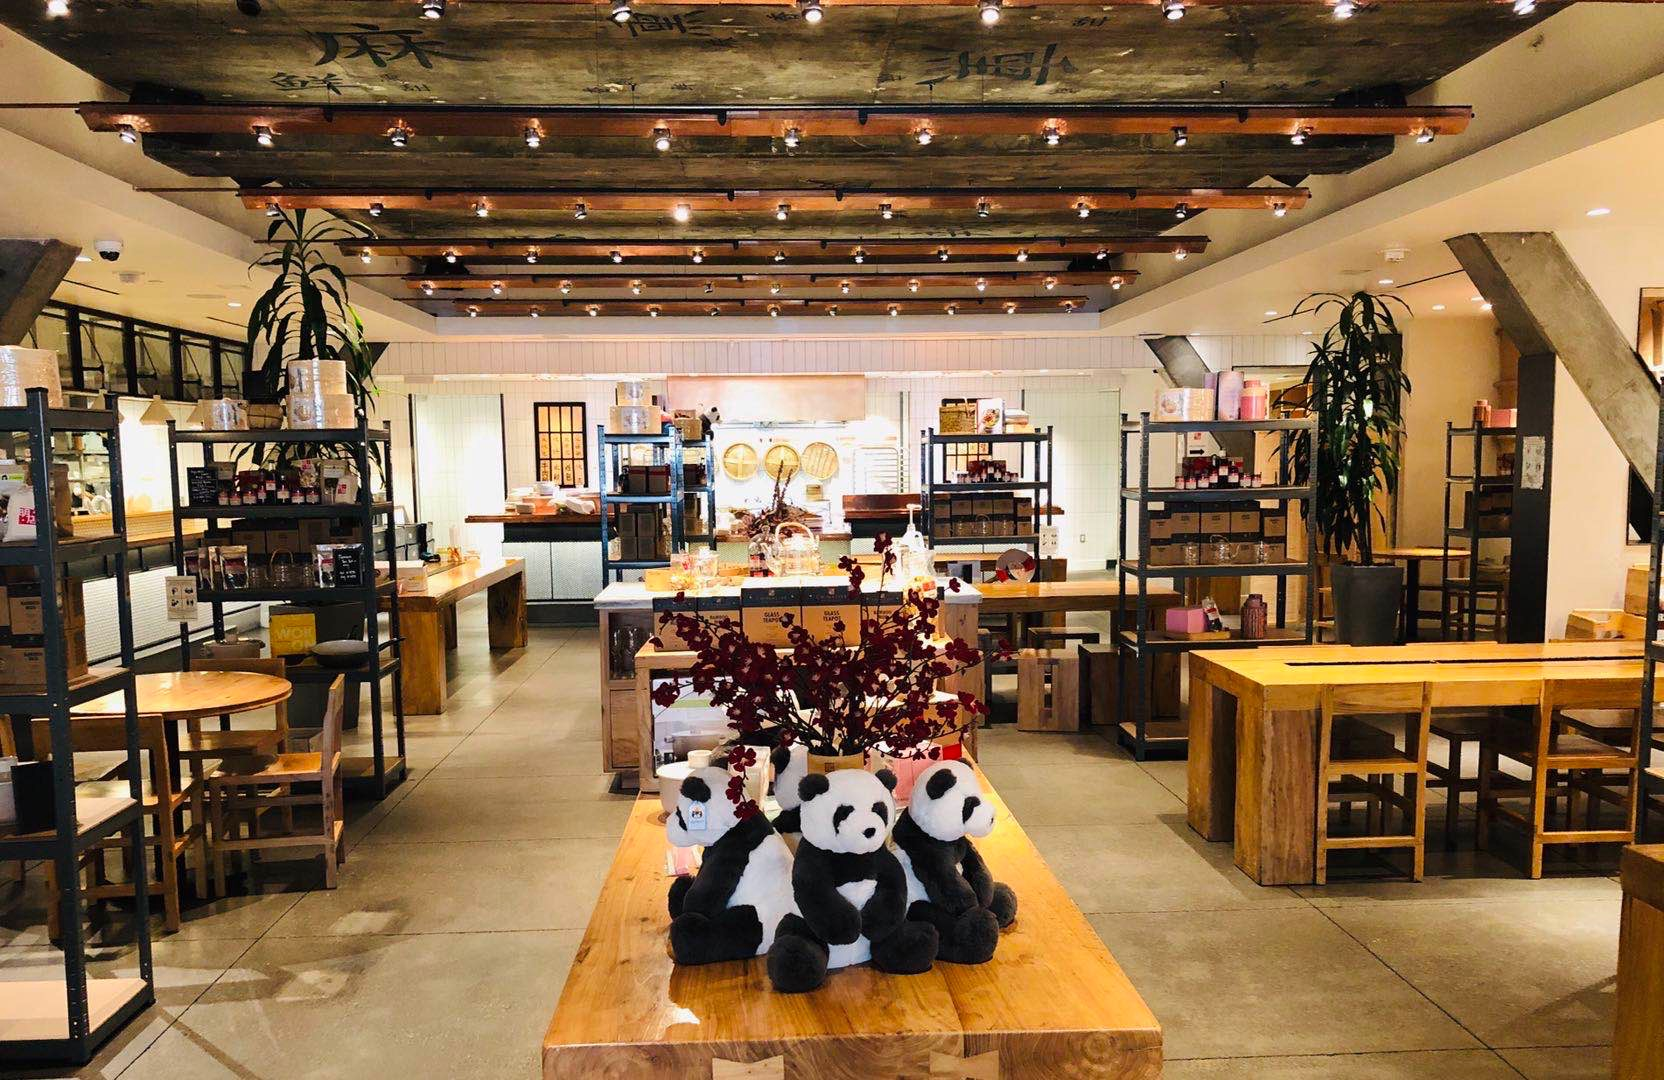 The dining room at China Live, now laid out as a hybrid retail market space, with a display of stuffed pandas in the foreground